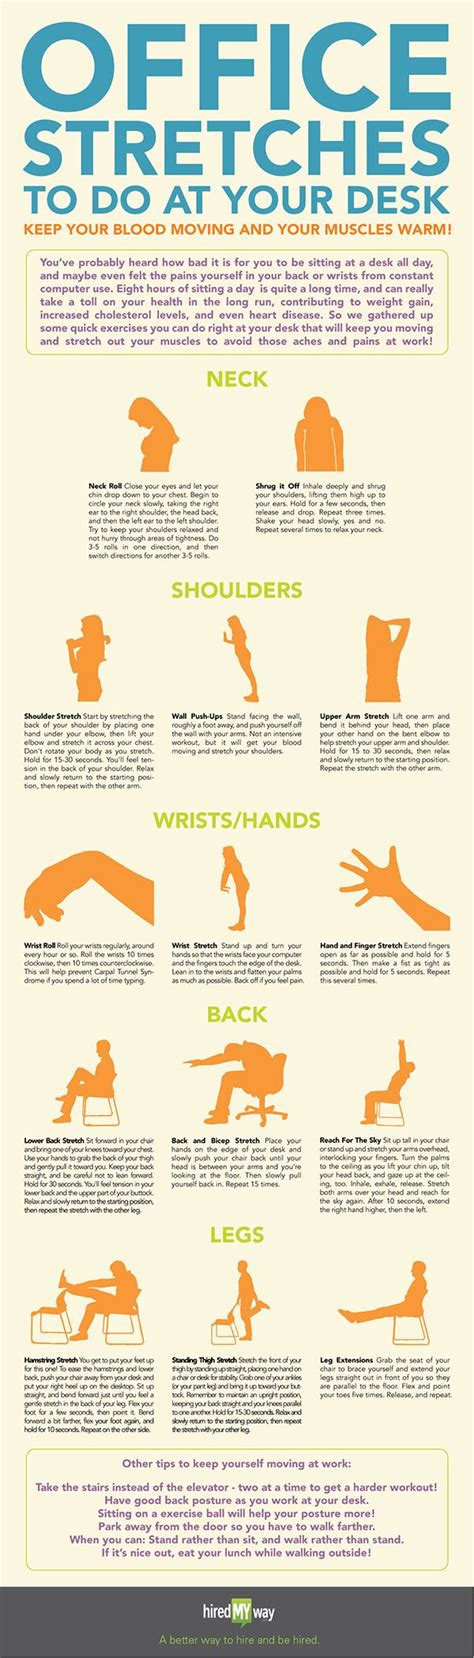 Office Stretches To Do At Your Desk office stretches to do at your desk infographic best infographics